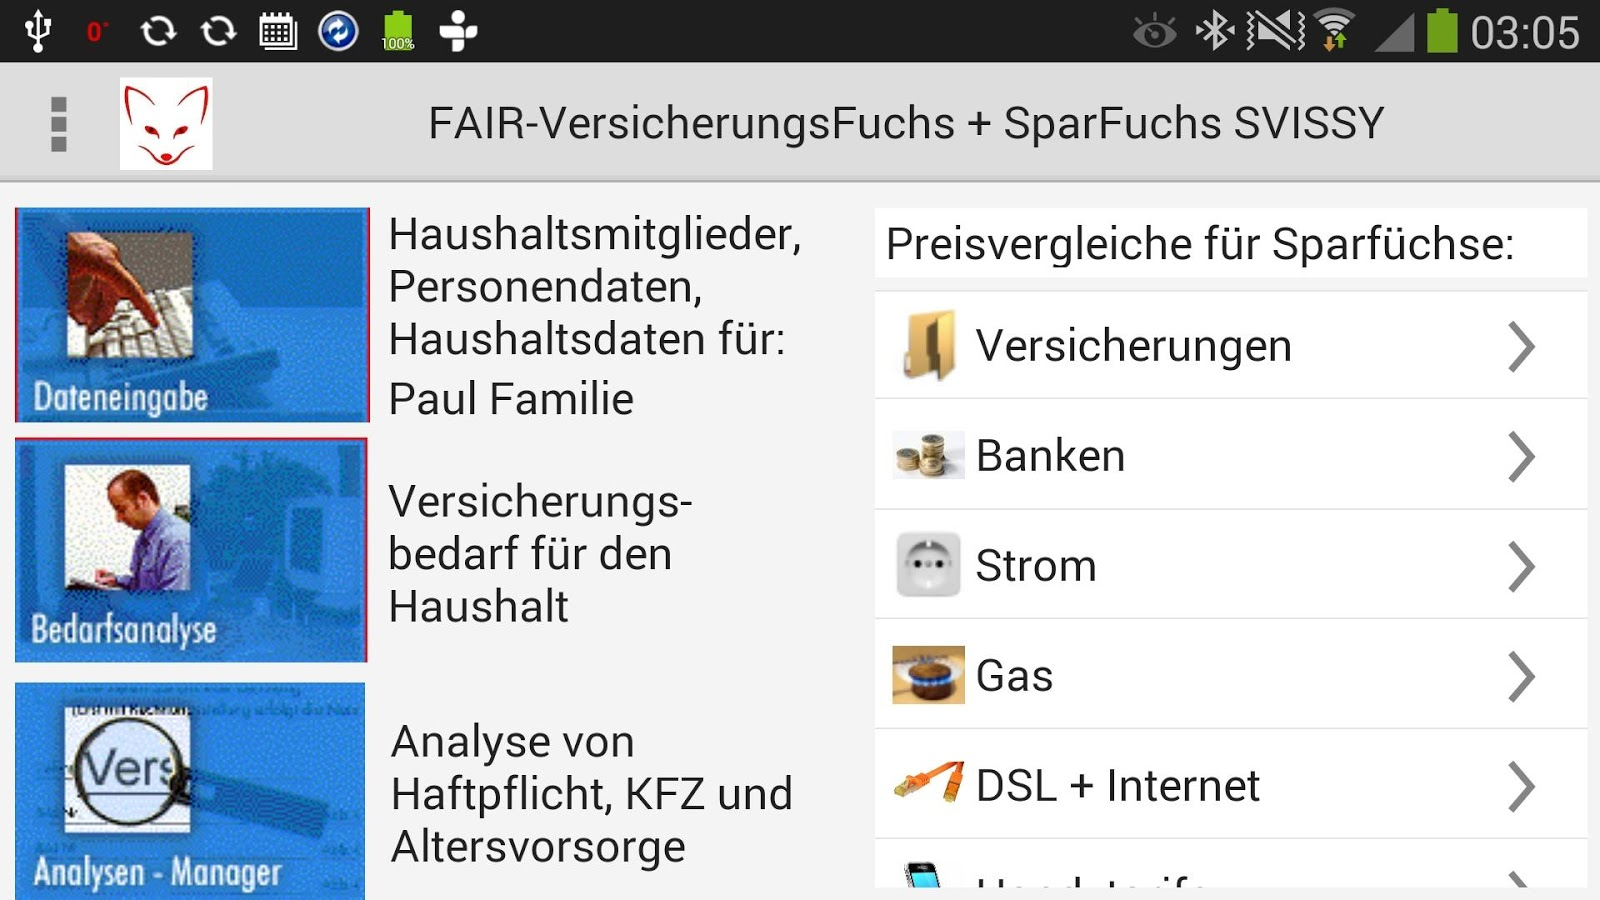 Fair-VersicherungsFuchs Free- screenshot